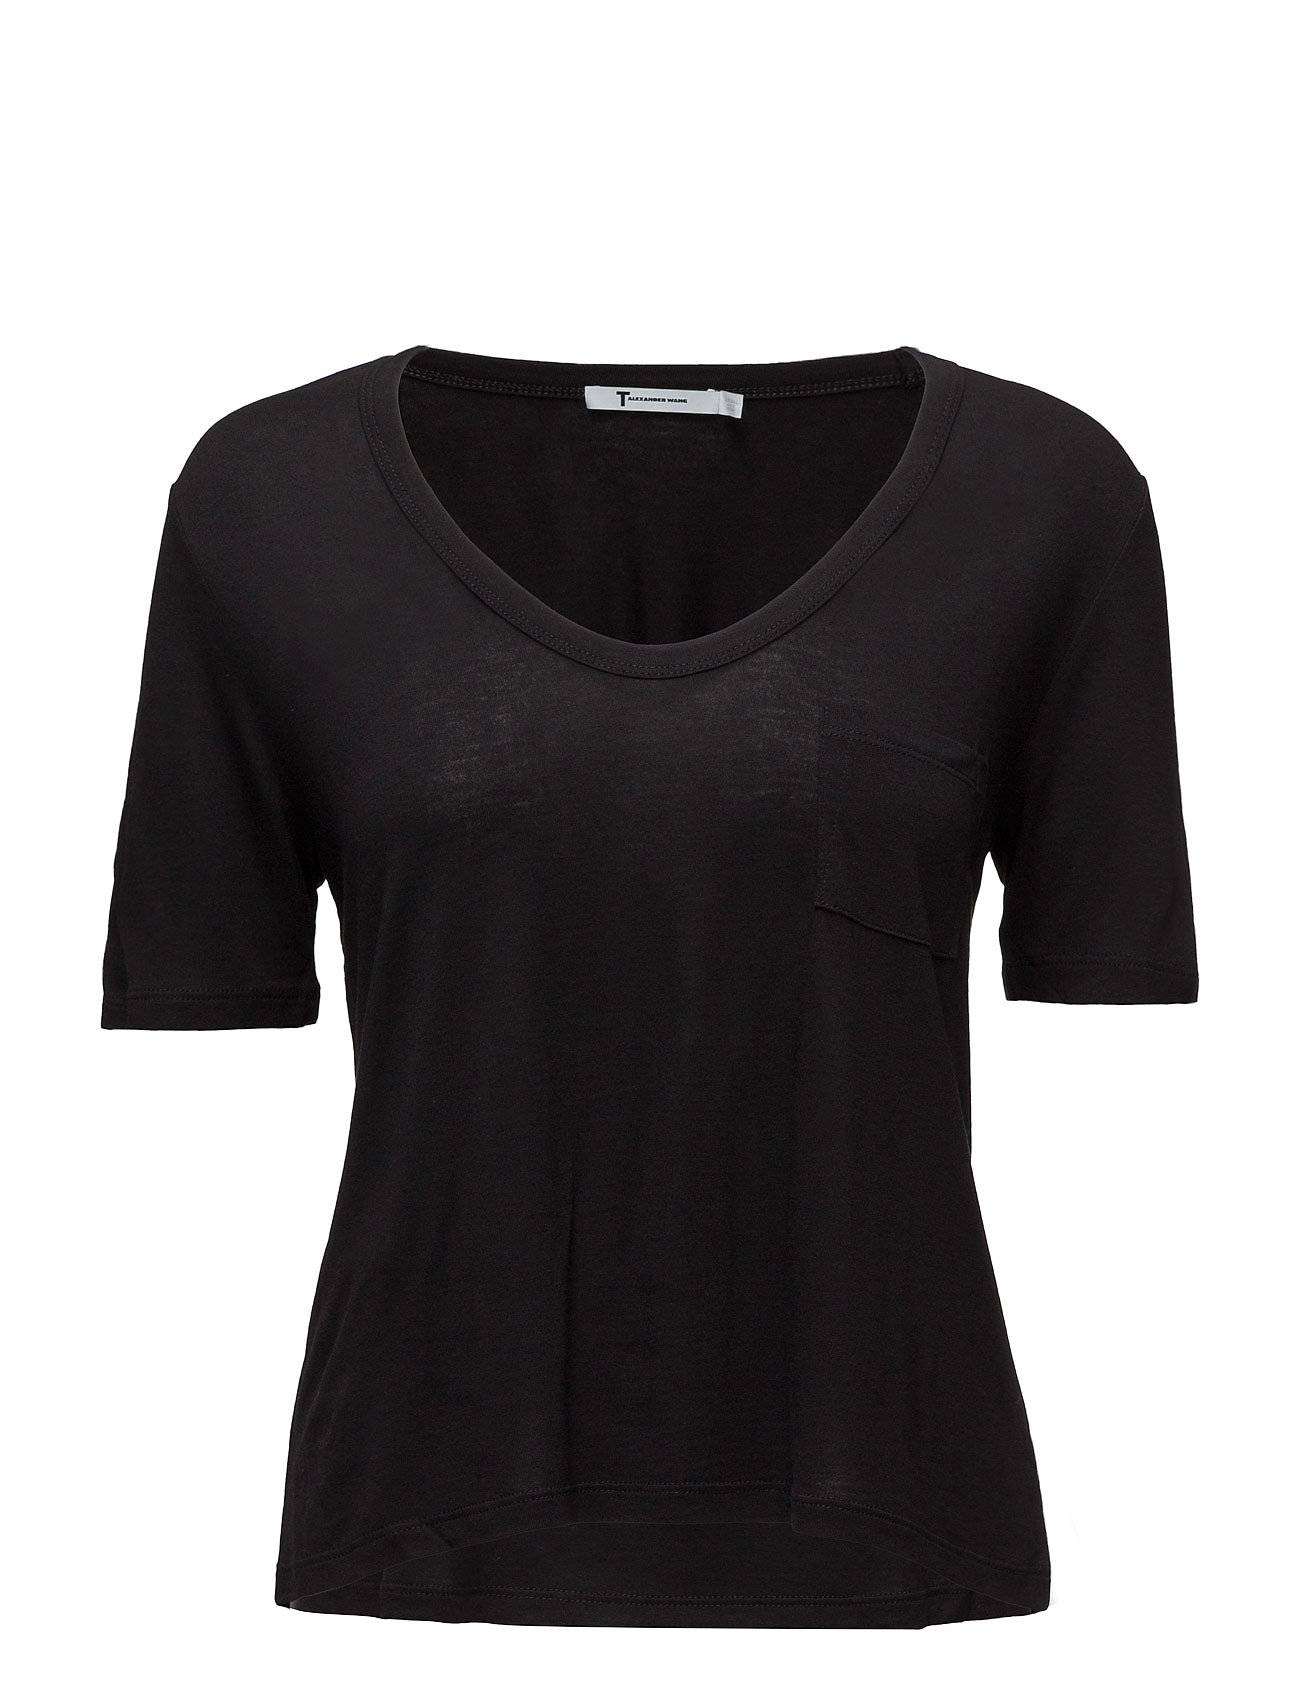 T by Alexander Wang Classic Cropped Tee Withchest Pocket